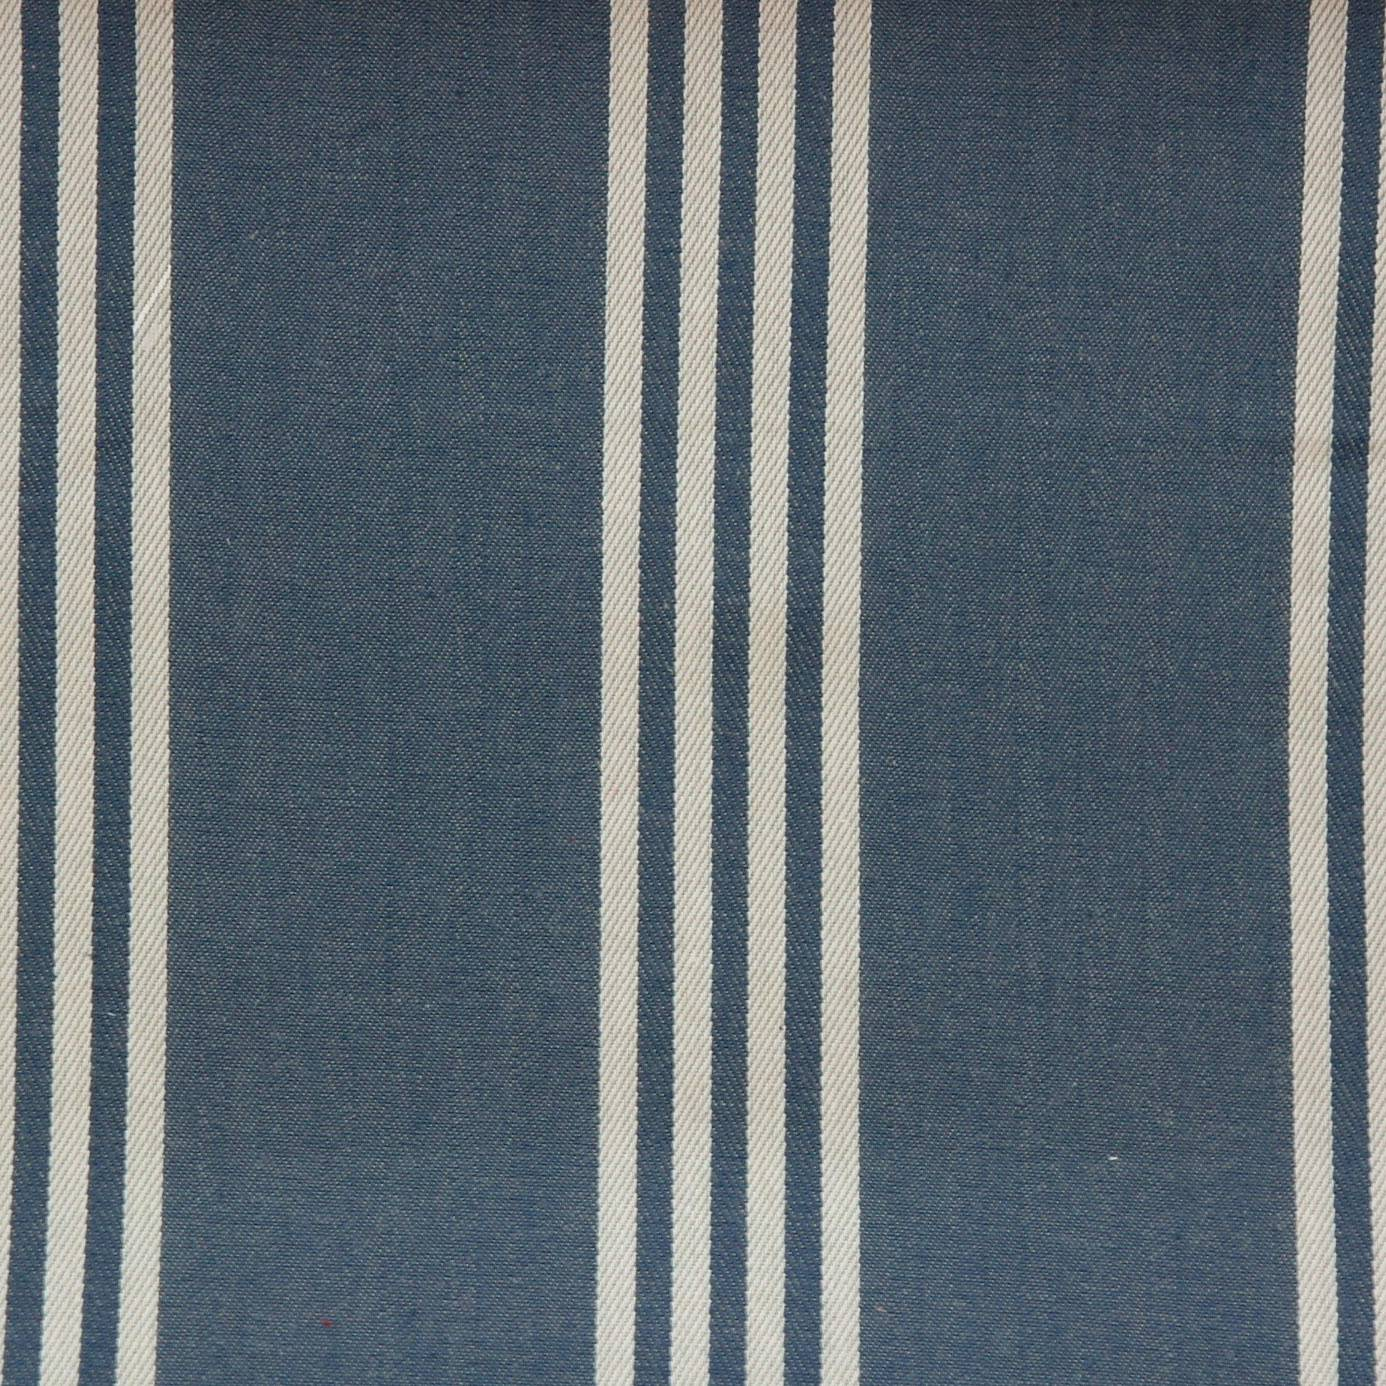 Marlow fabric navy f0422 04 clarke clarke ticking for Ticking fabric